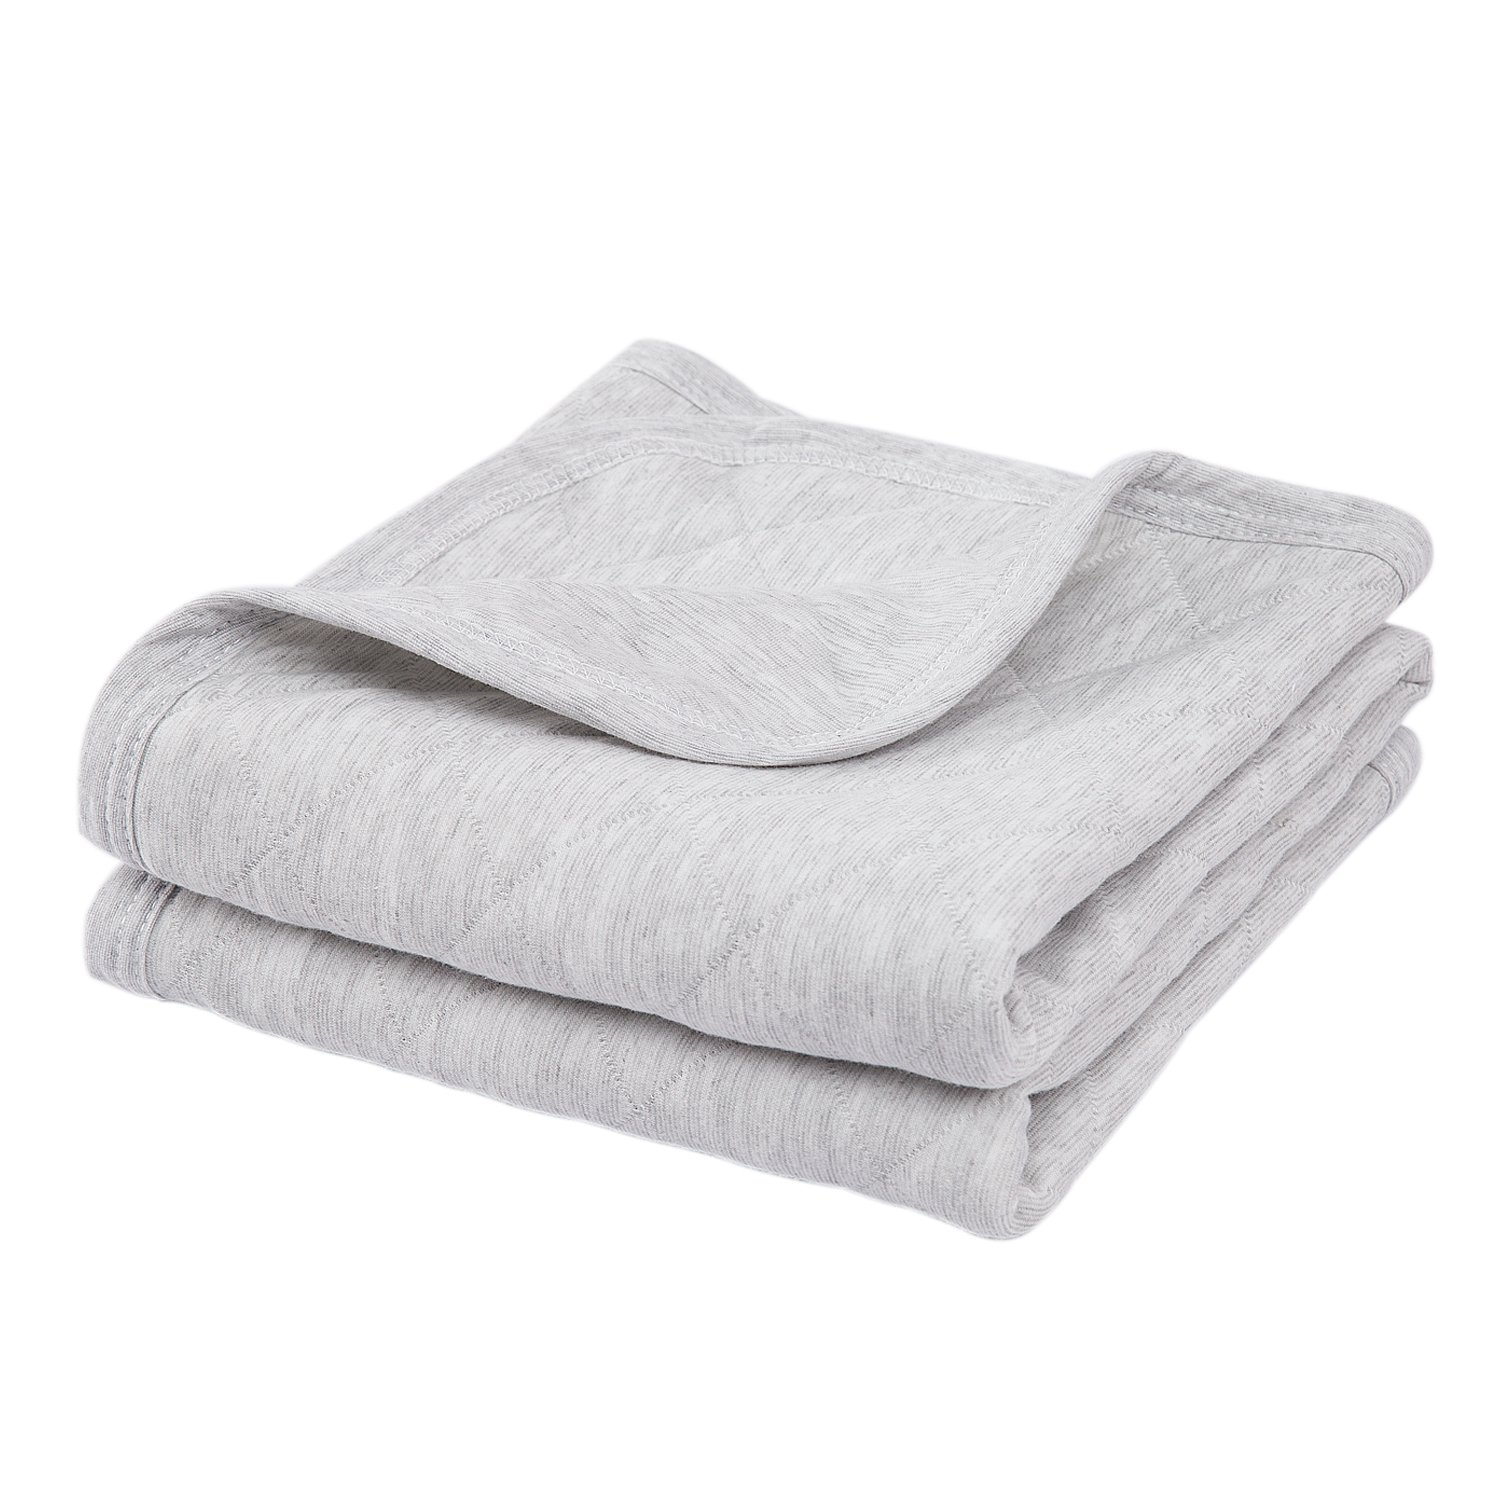 TILLYOU Allergy-Free Quilted Thermal Baby Blanket Lightweight Toddler Blanket for Boys Girls 39x39 Large, 100% Breathable Jersey Cotton, Super Soft and Warm Crib Blanket for All Seasons - Gray